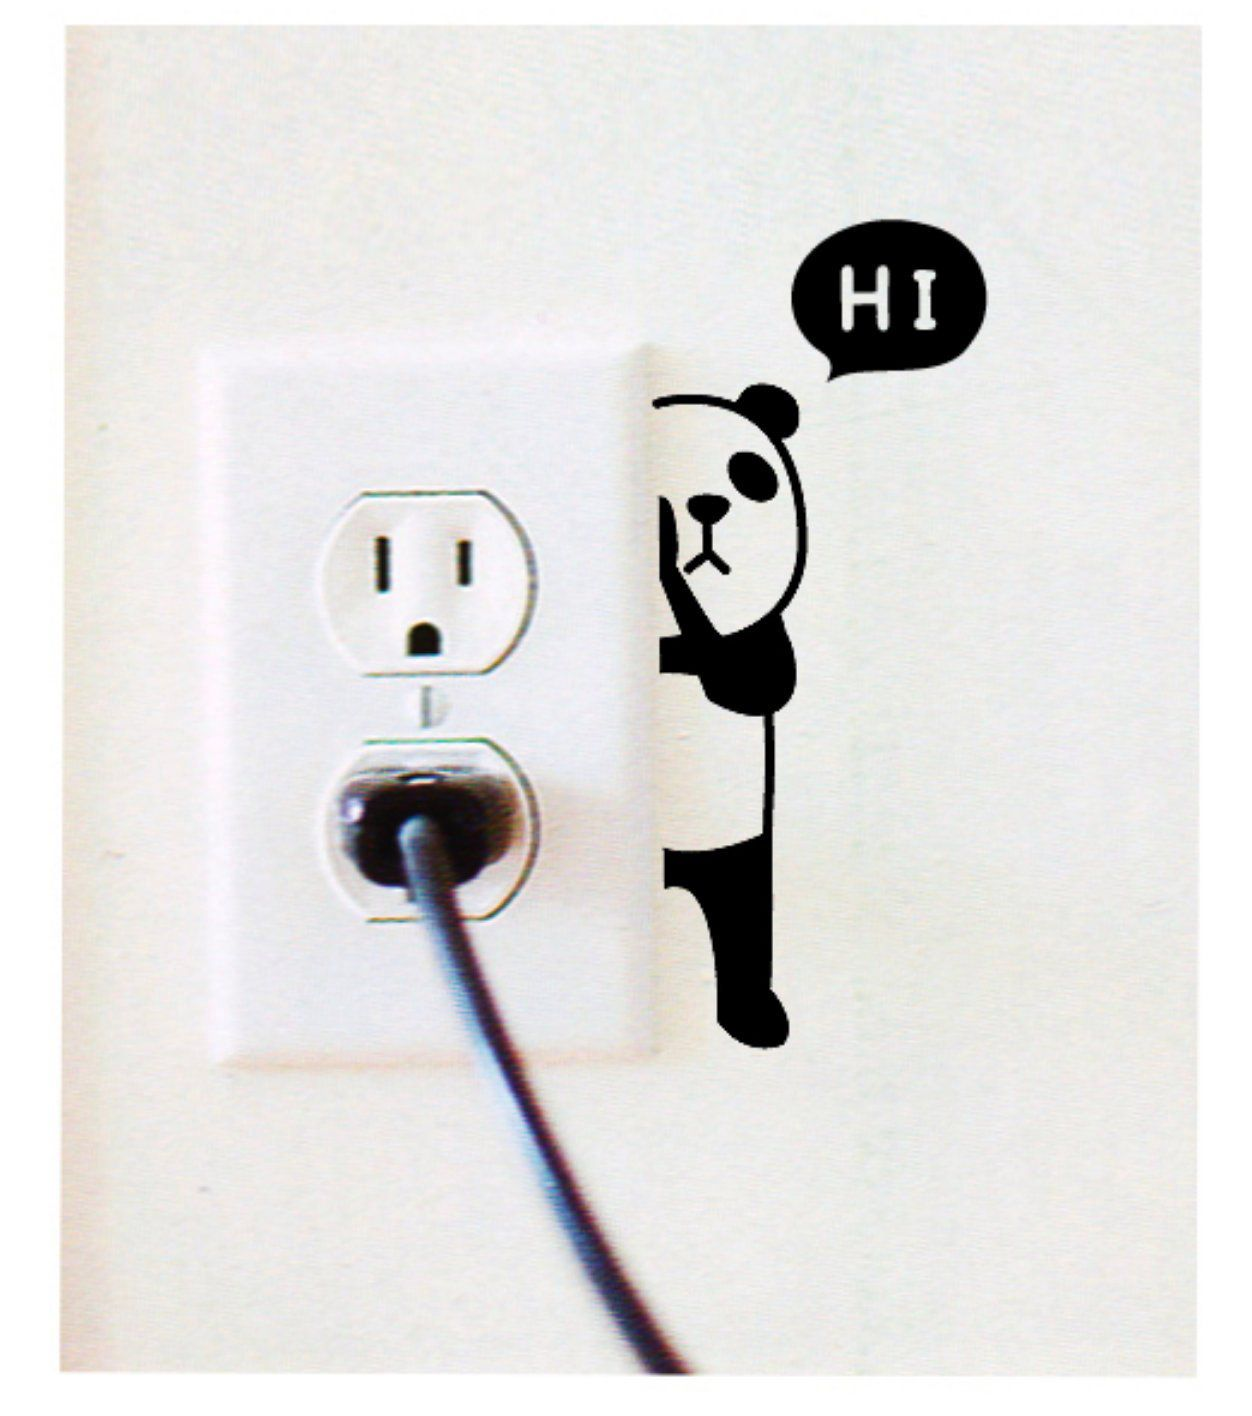 Funny Headphones Wall Sticker Switch Vinyl Decal Funny Lightswitch Kids Room DIY